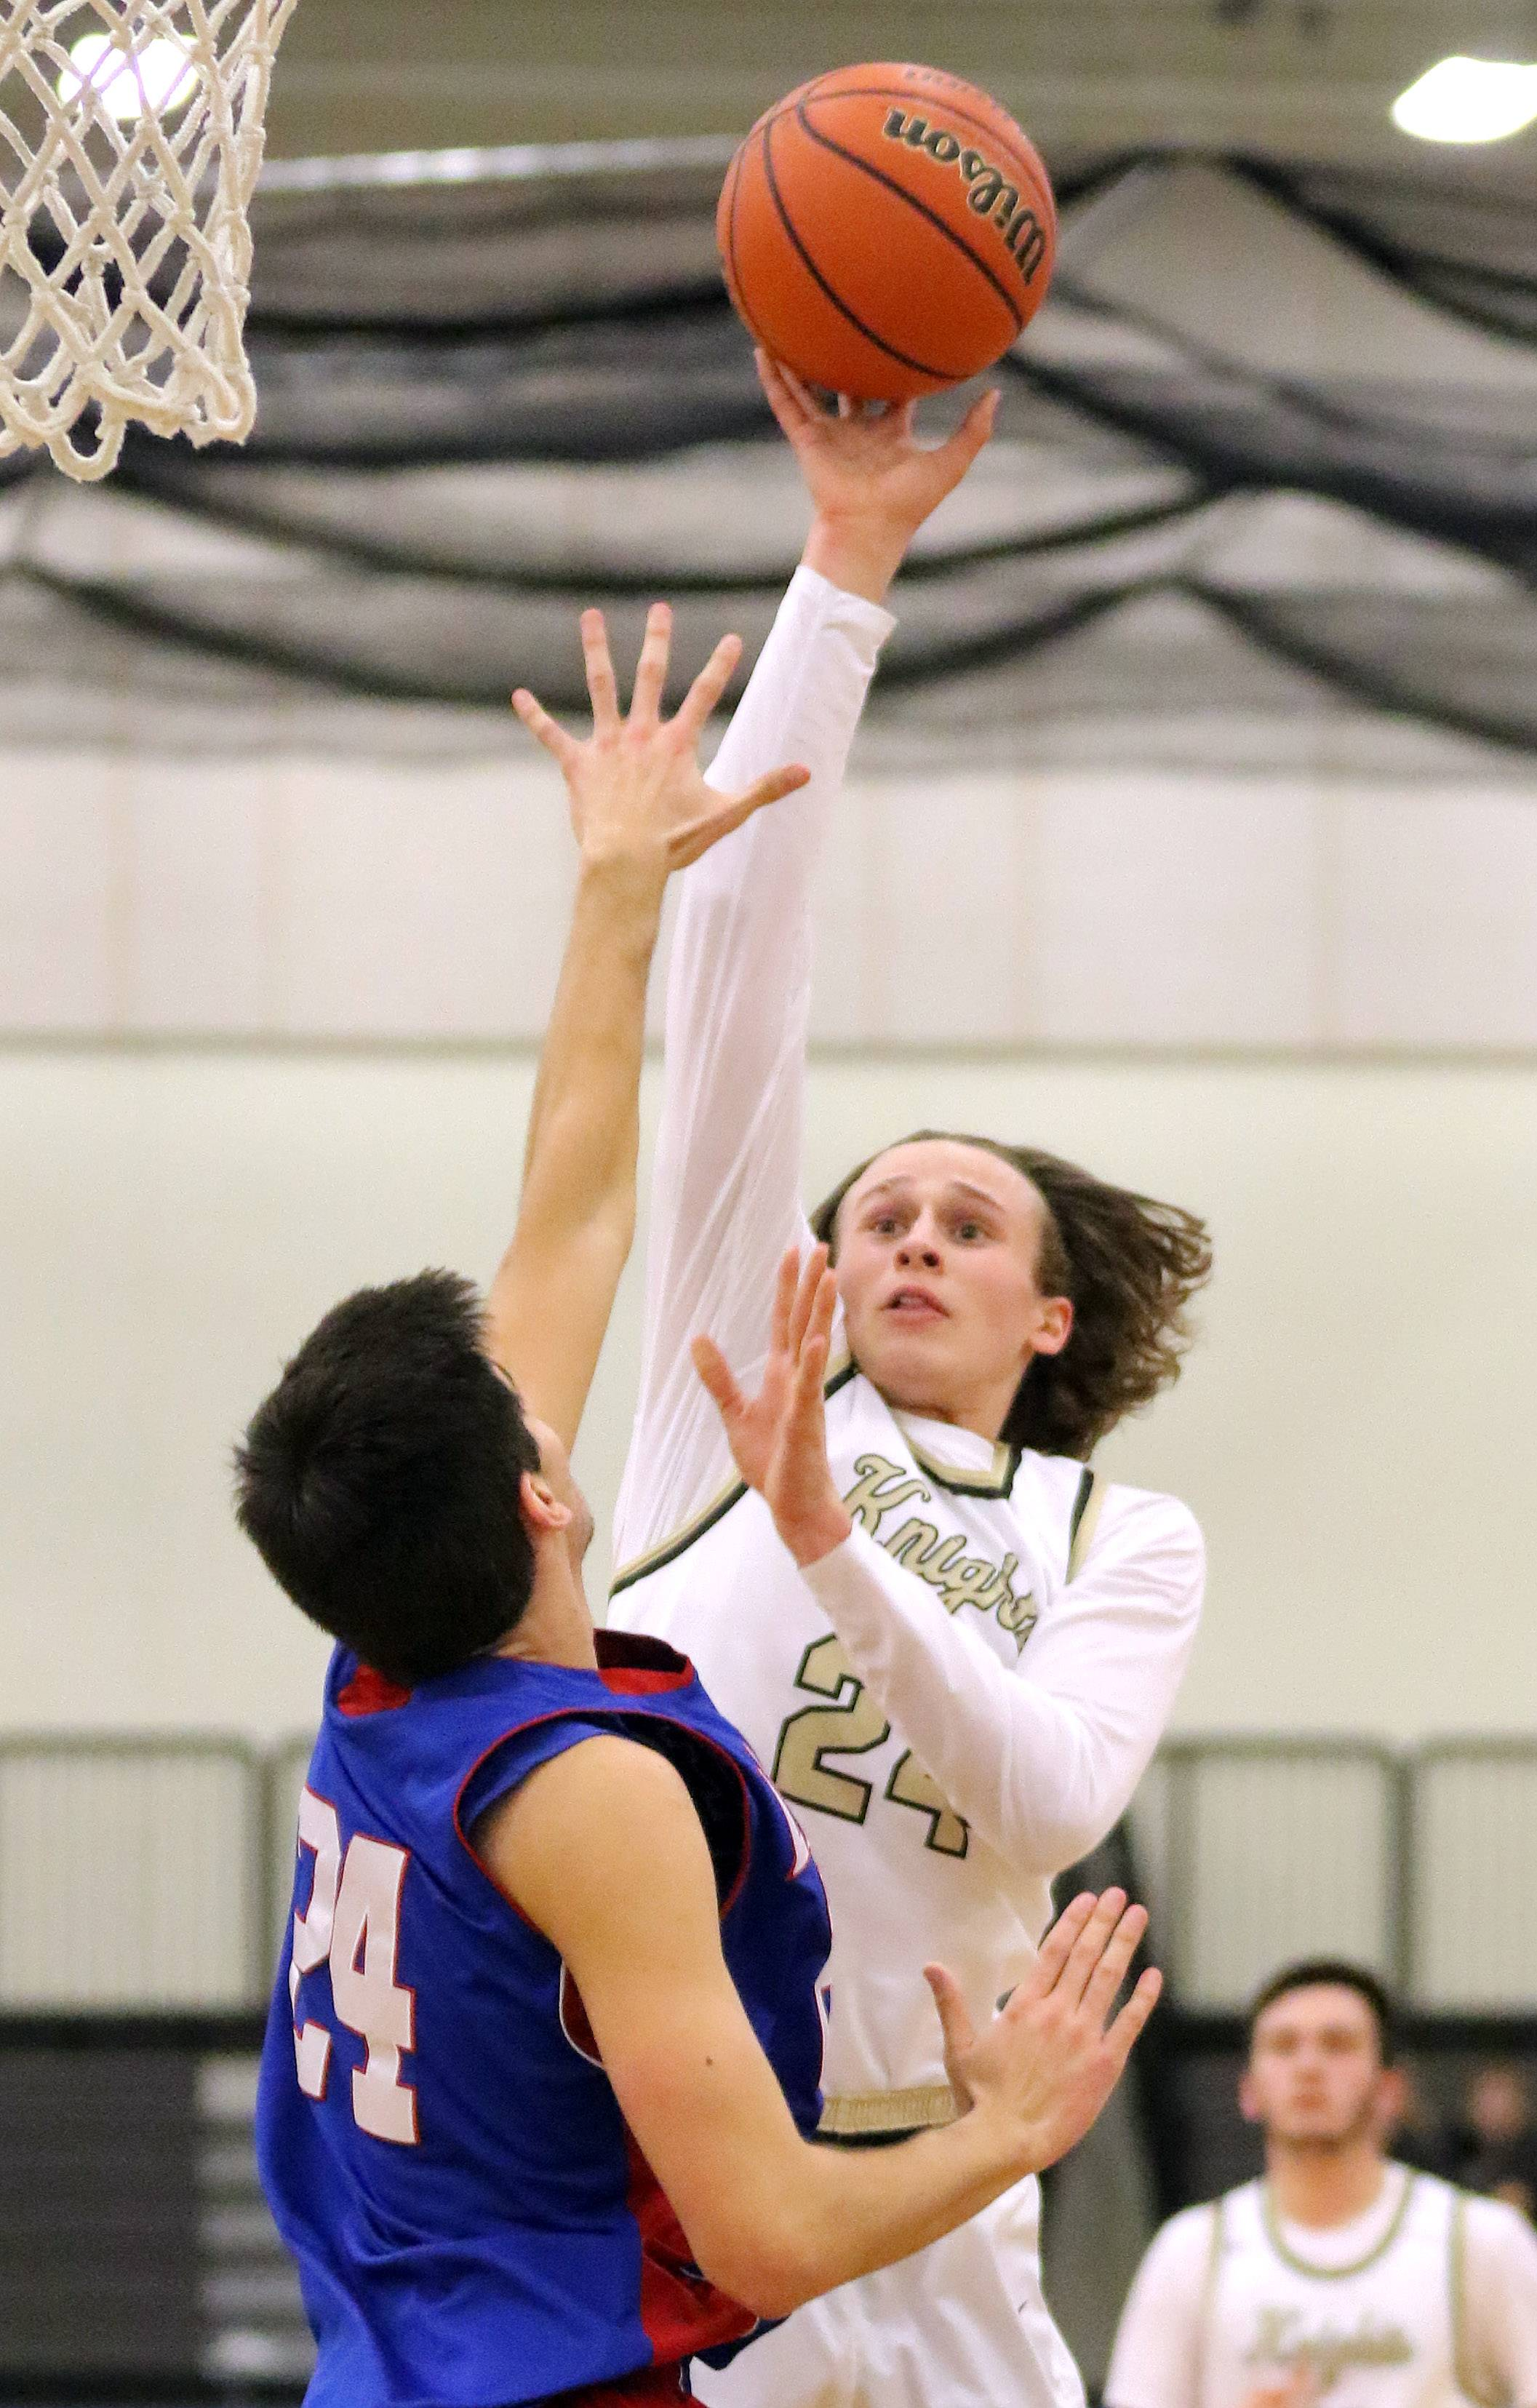 Grayslake North's Ryan Connolly, right, shoots over Lakes' Wade Parmly on Tuesday at Grayslake North.